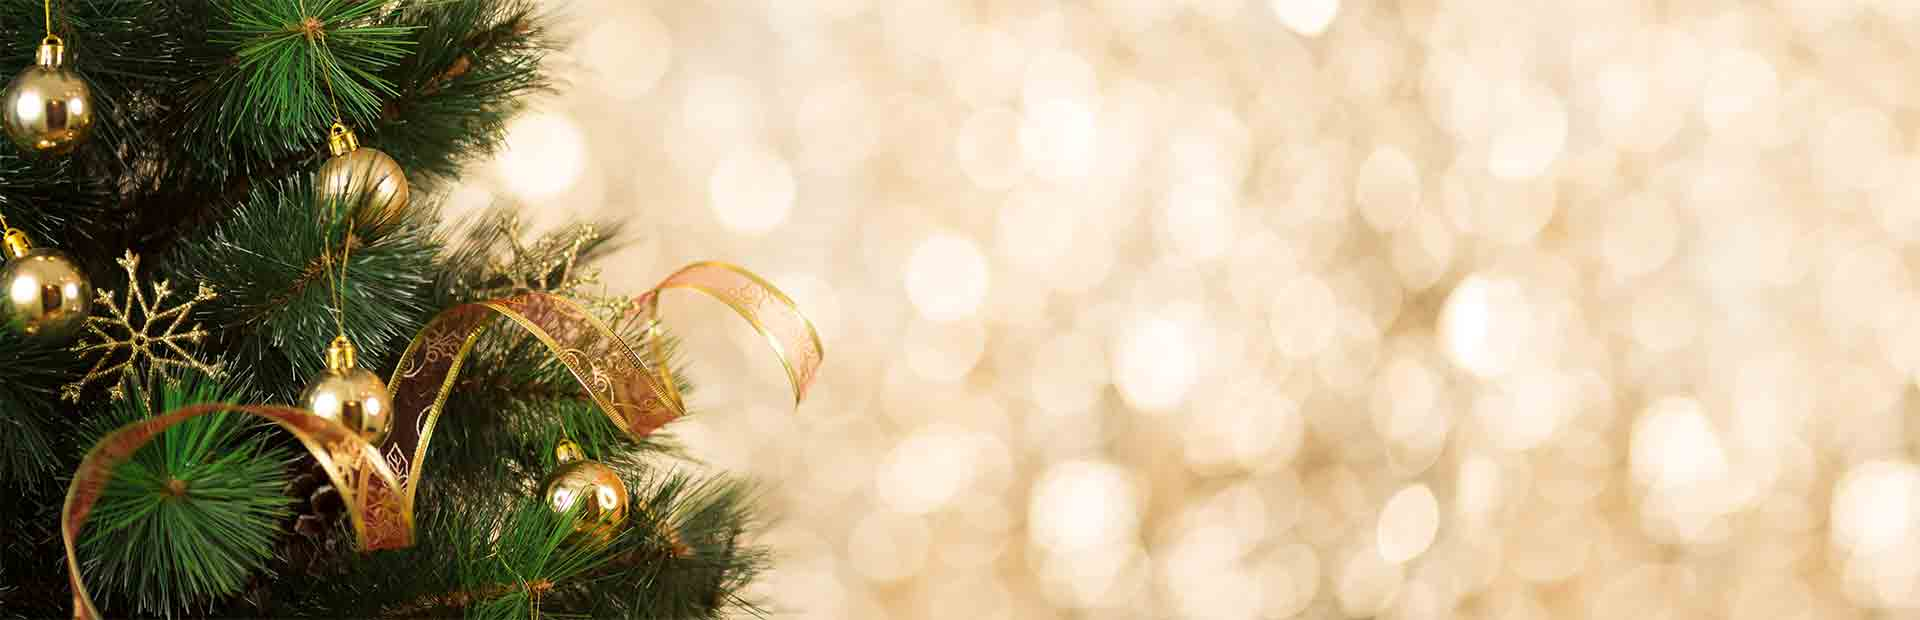 Background Music For Christmas Eve Jamendo Royalty Free